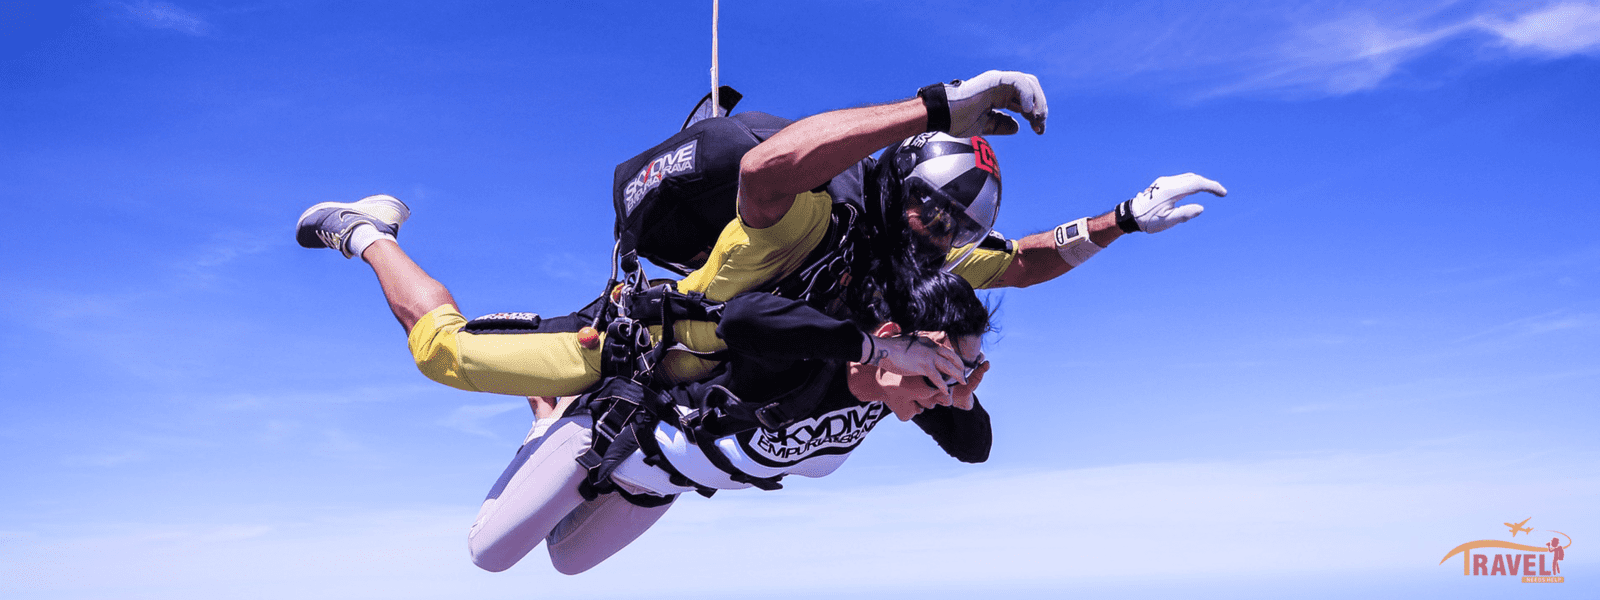 Skydiving in Pattaya near Bangkok - Tour